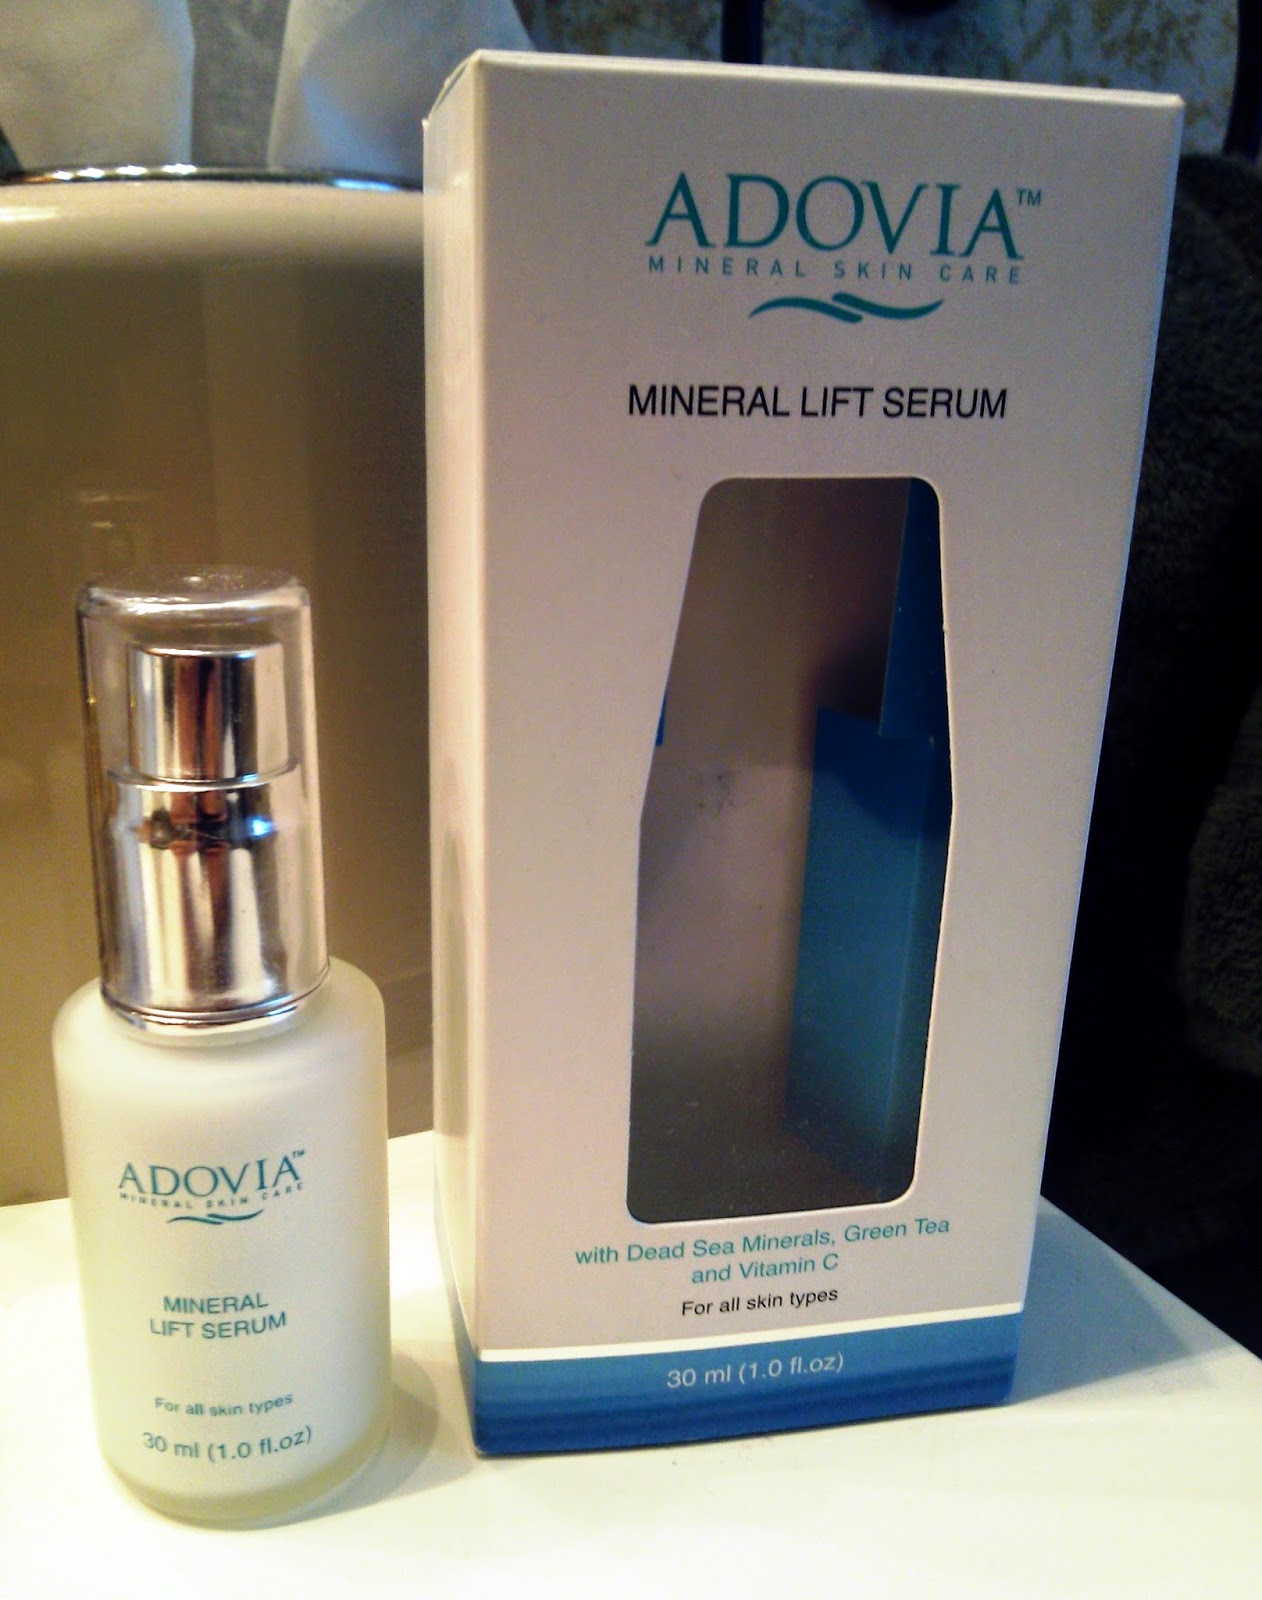 Adovia Mineral Lift Serum Review